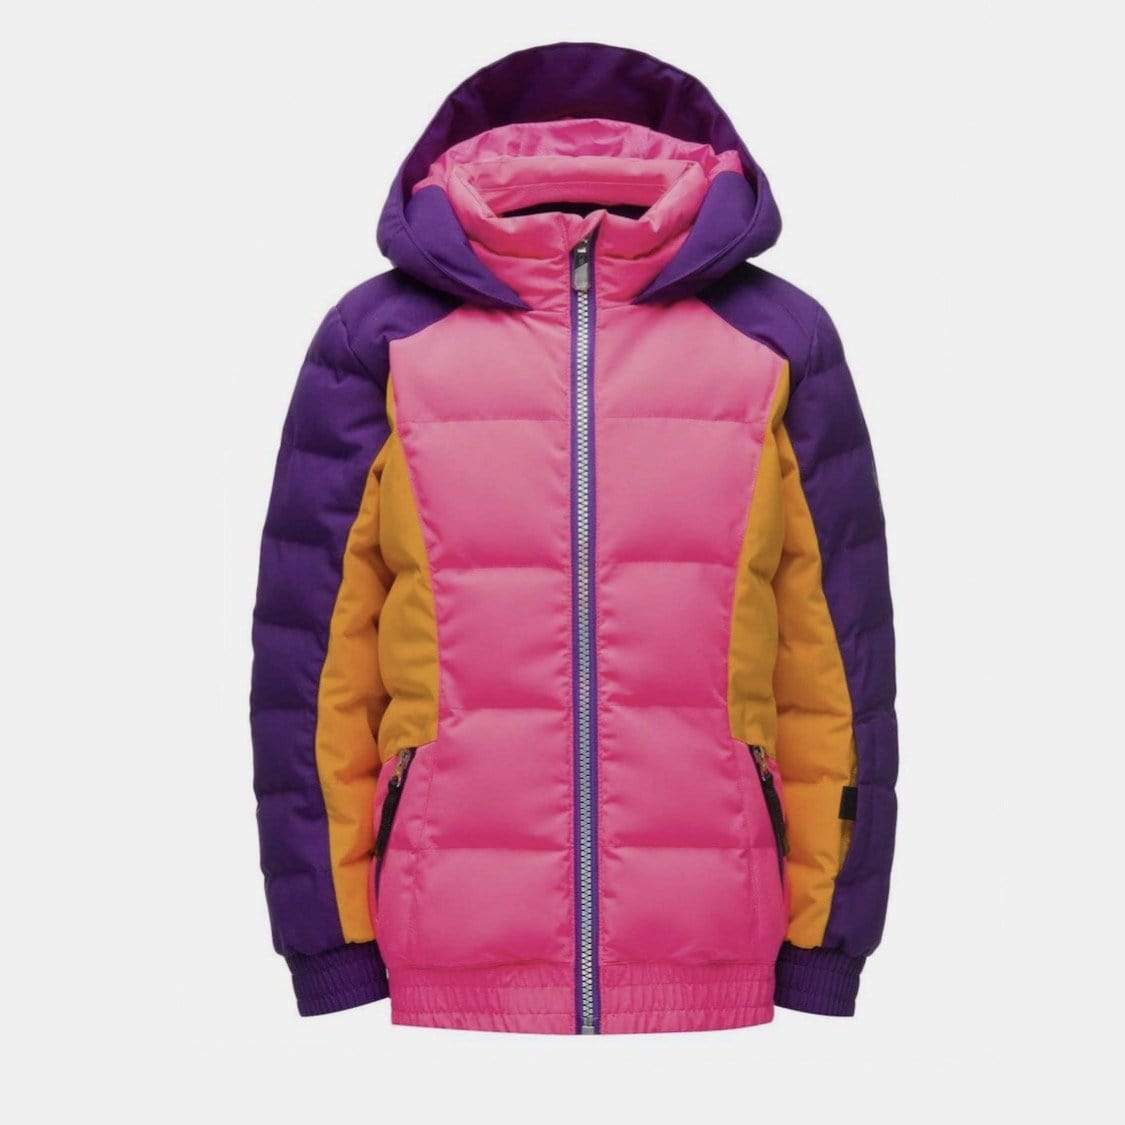 Spyder - Girls Bryte Bubblegum Pink Overflow Jacket Winter Jacket Spyder 2 Years